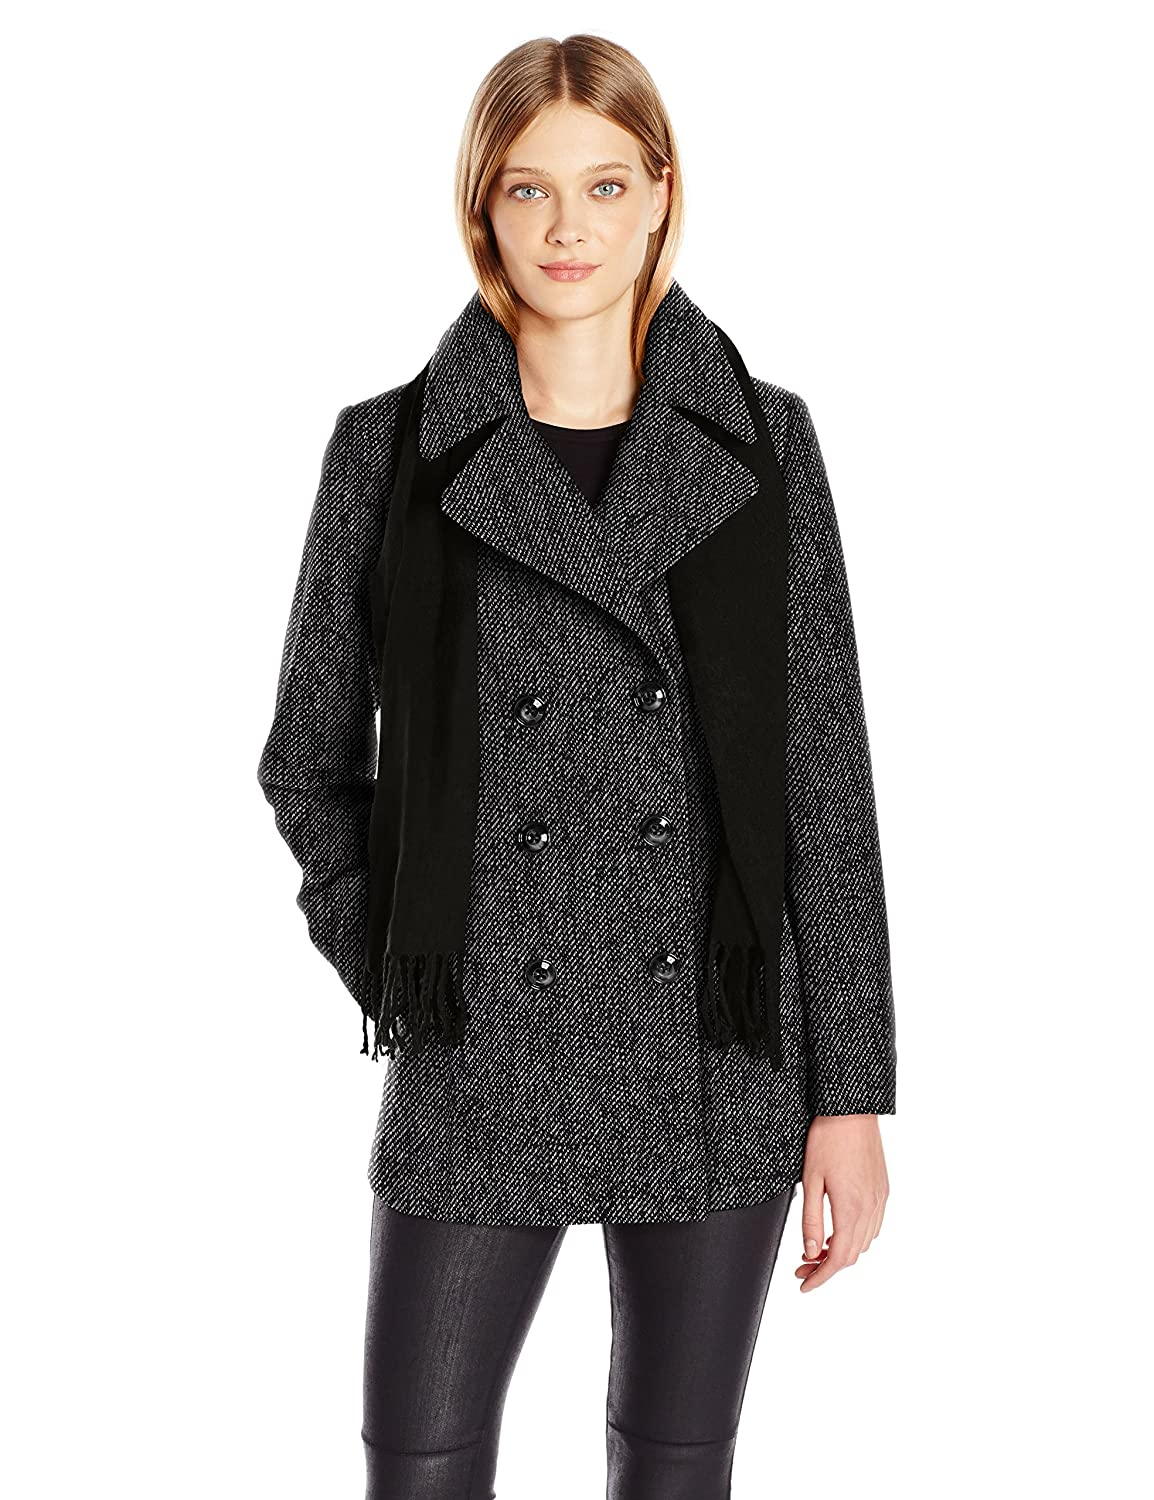 London Fog Womens Double Breasted Peacoat with Scarf London Fog Women' s Outerwear